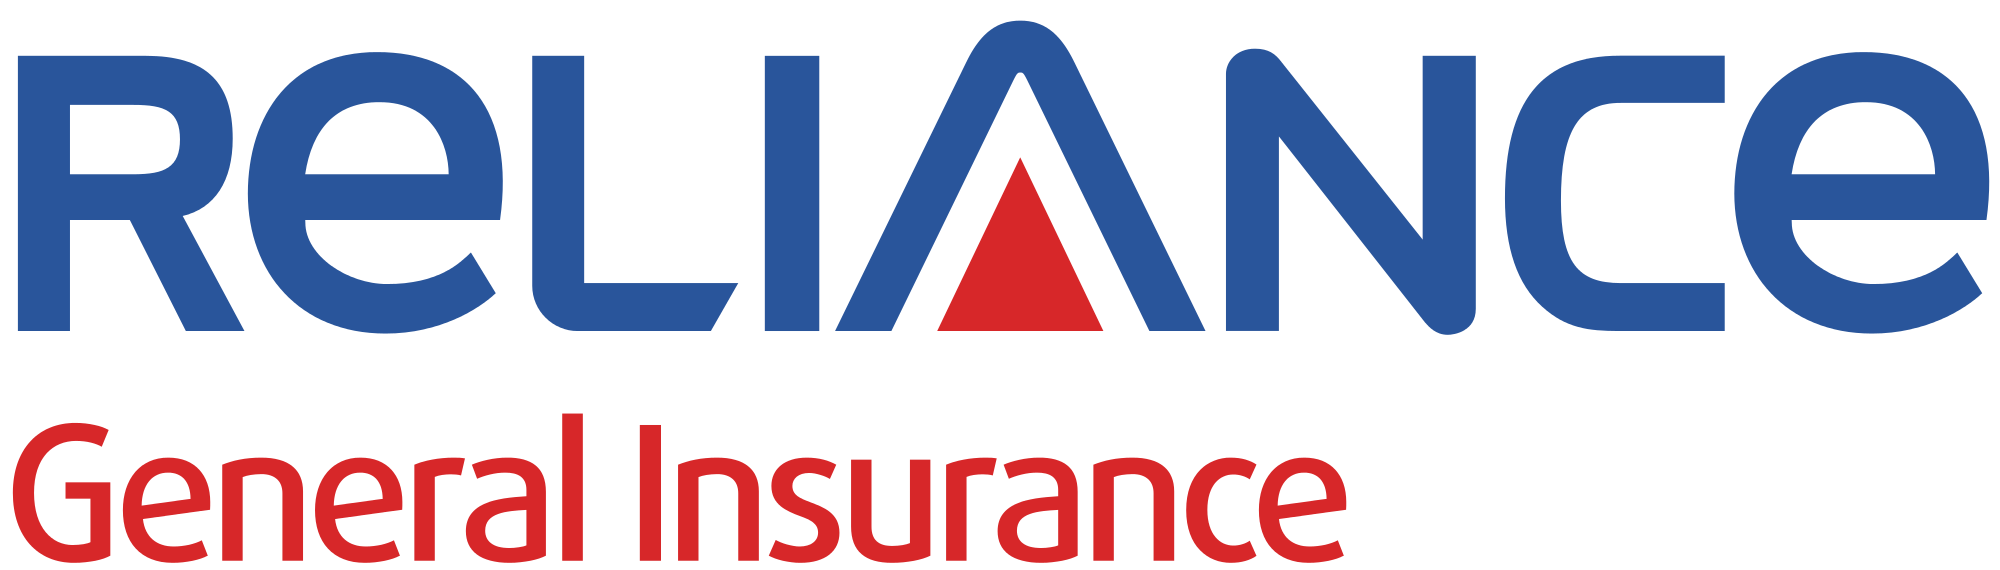 Insurance logos png. File reliance general svg